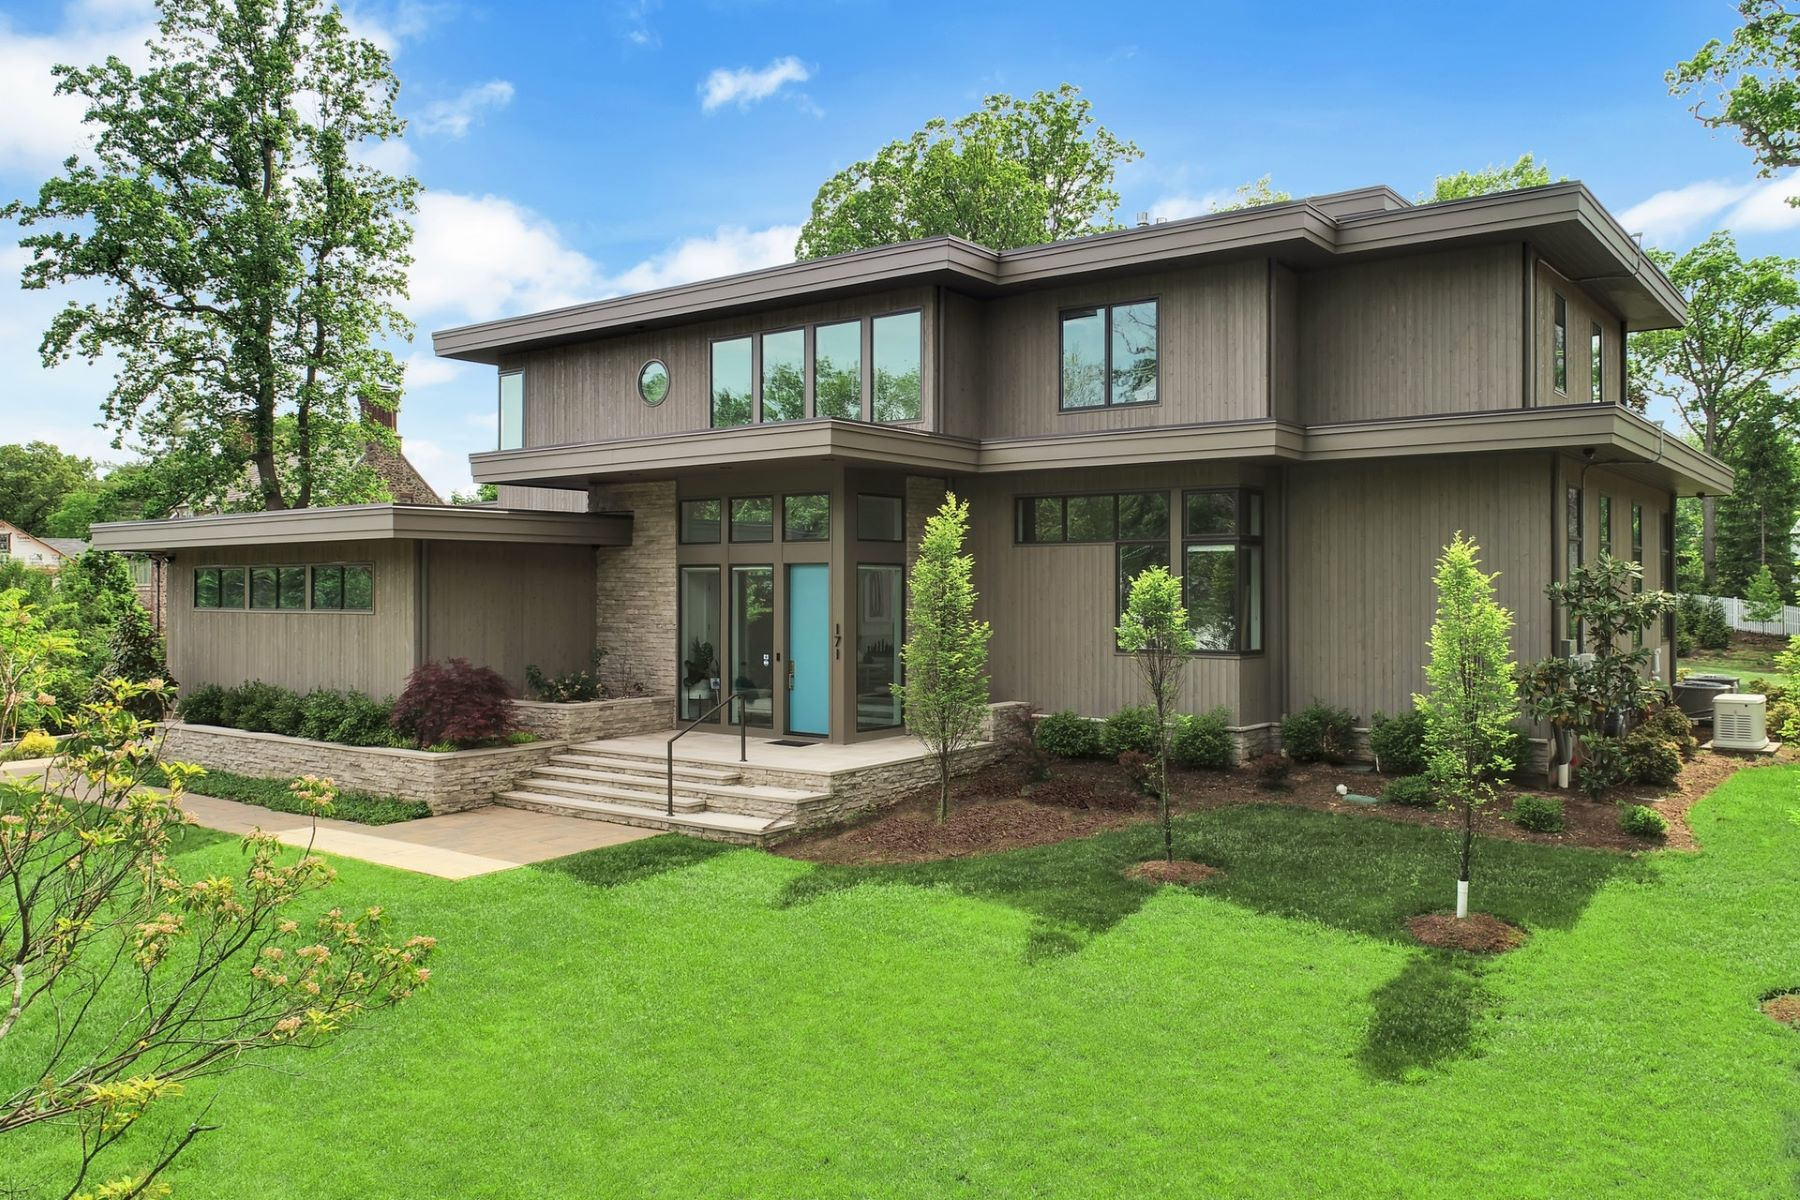 Single Family Homes for Sale at Modern Masterpiece 171 Highland Avenue, Short Hills, New Jersey 07078 United States